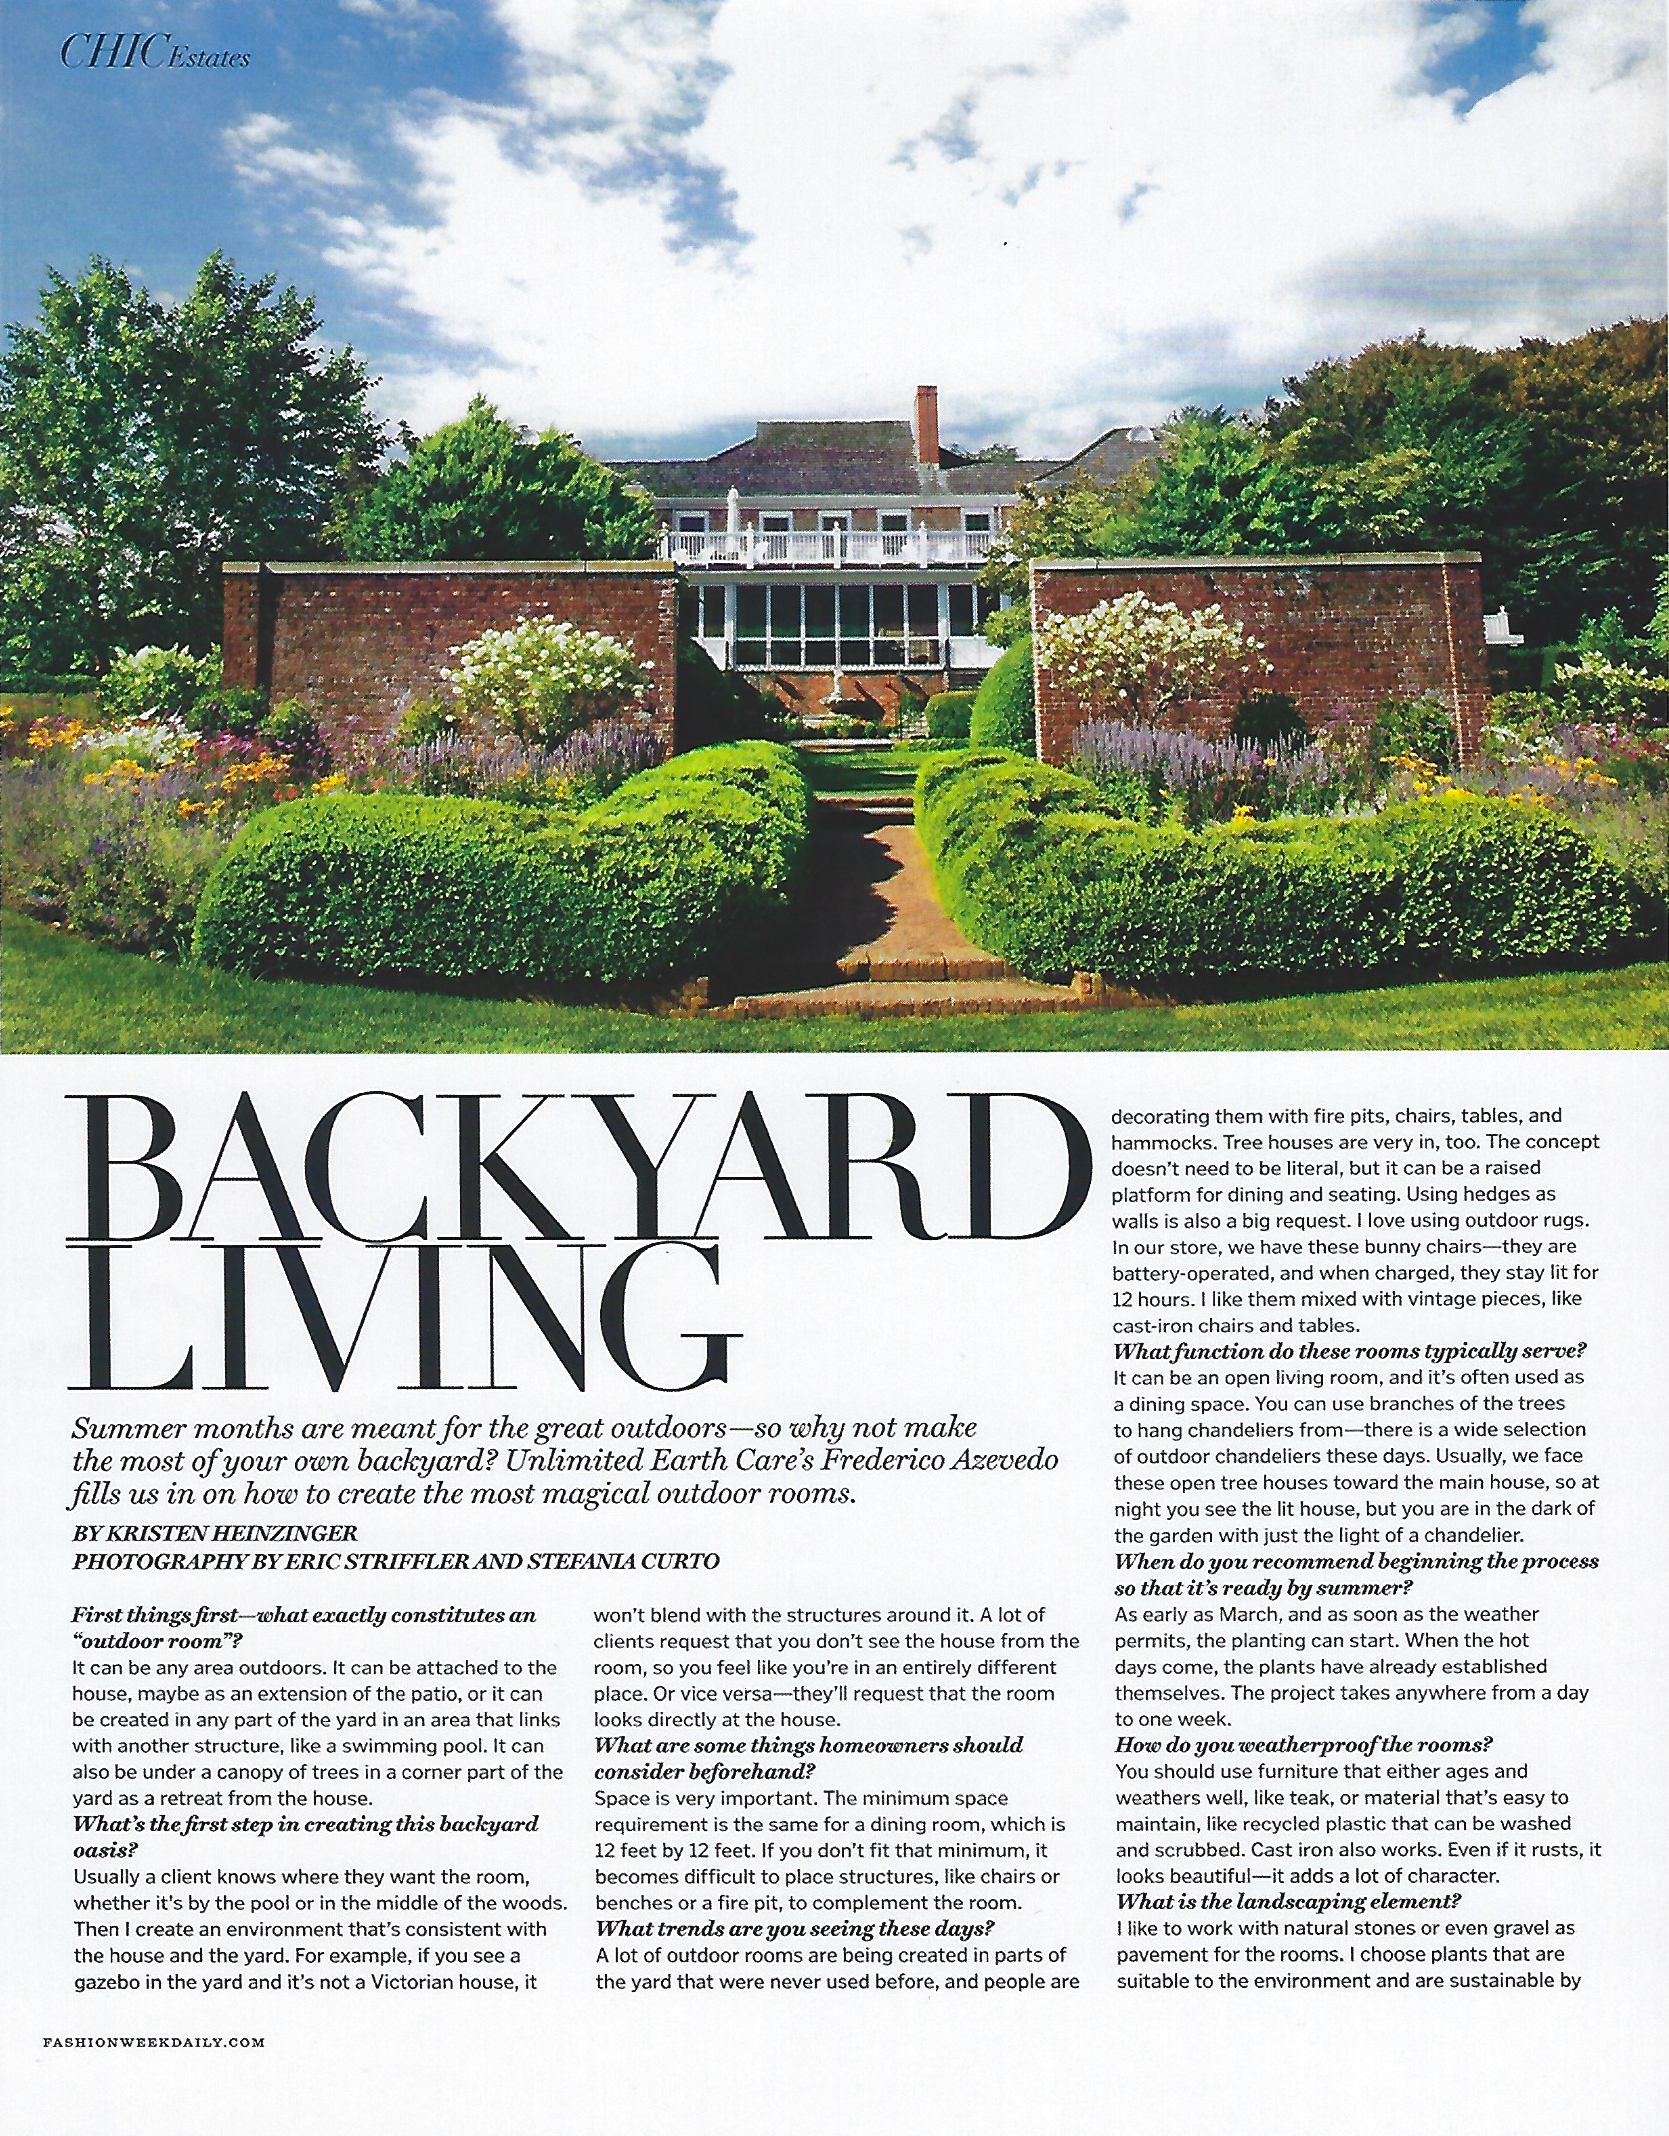 Daily Front Row - Backyard Living_June 2017 1.jpg